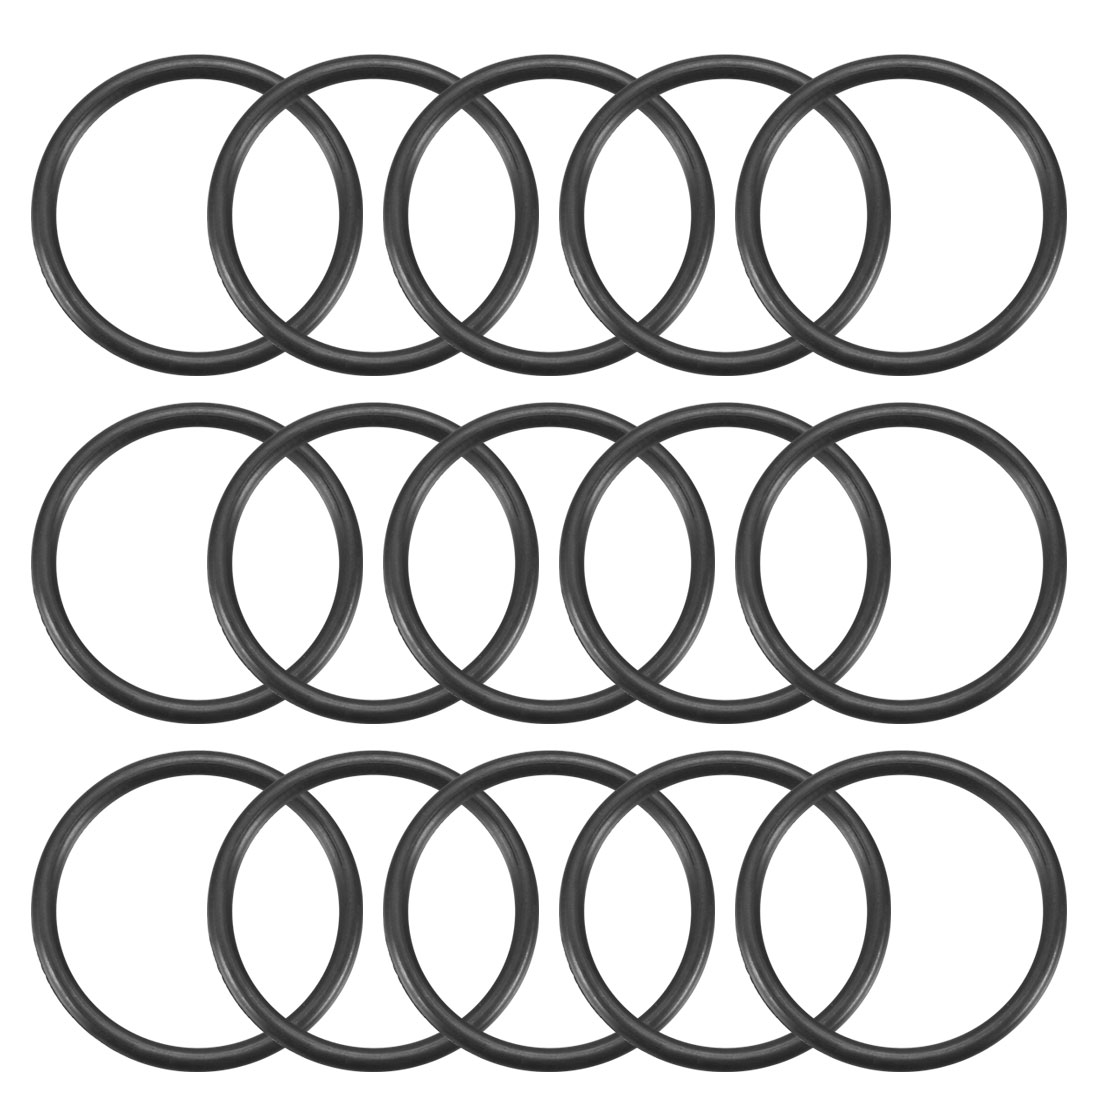 15 Pcs Black 25mm x 2mm NBR Oil Resistant Sealing Ring O-shape Grommets